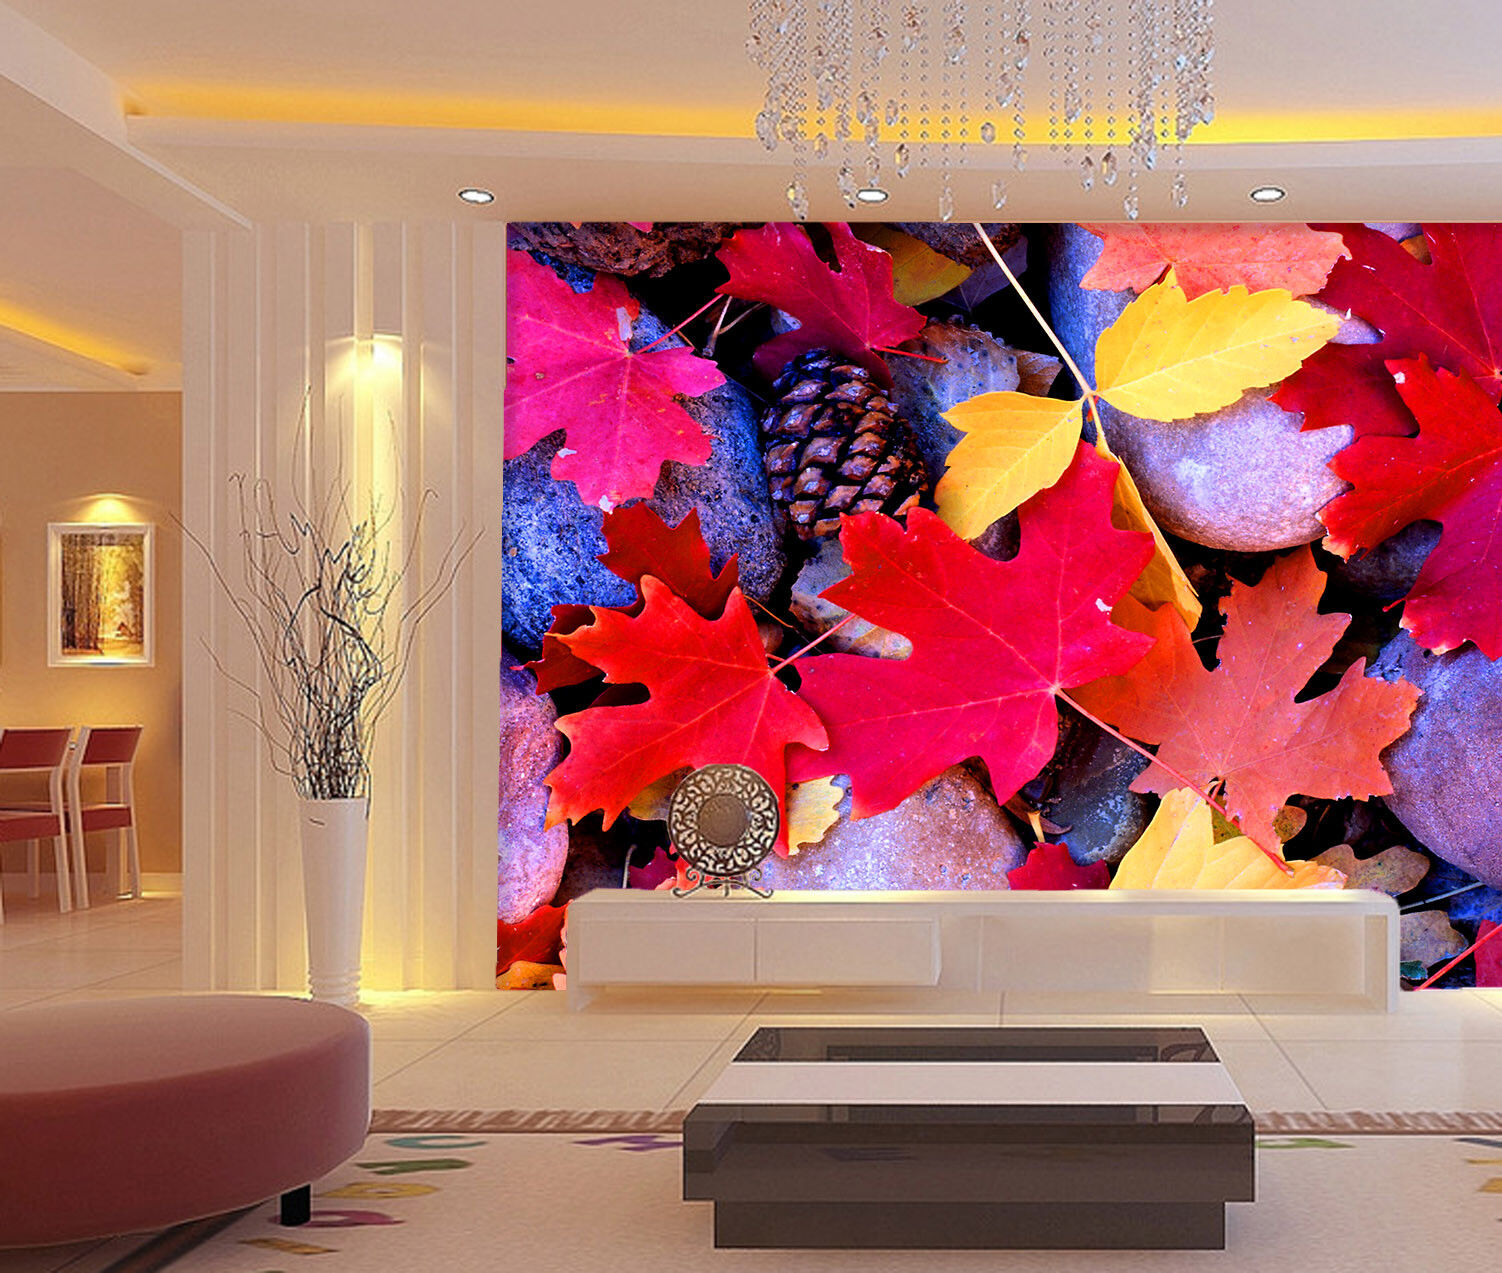 3D Stones Red Leaves 9 Wall Paper Murals Wall Print Wall Wallpaper Mural AU Kyra